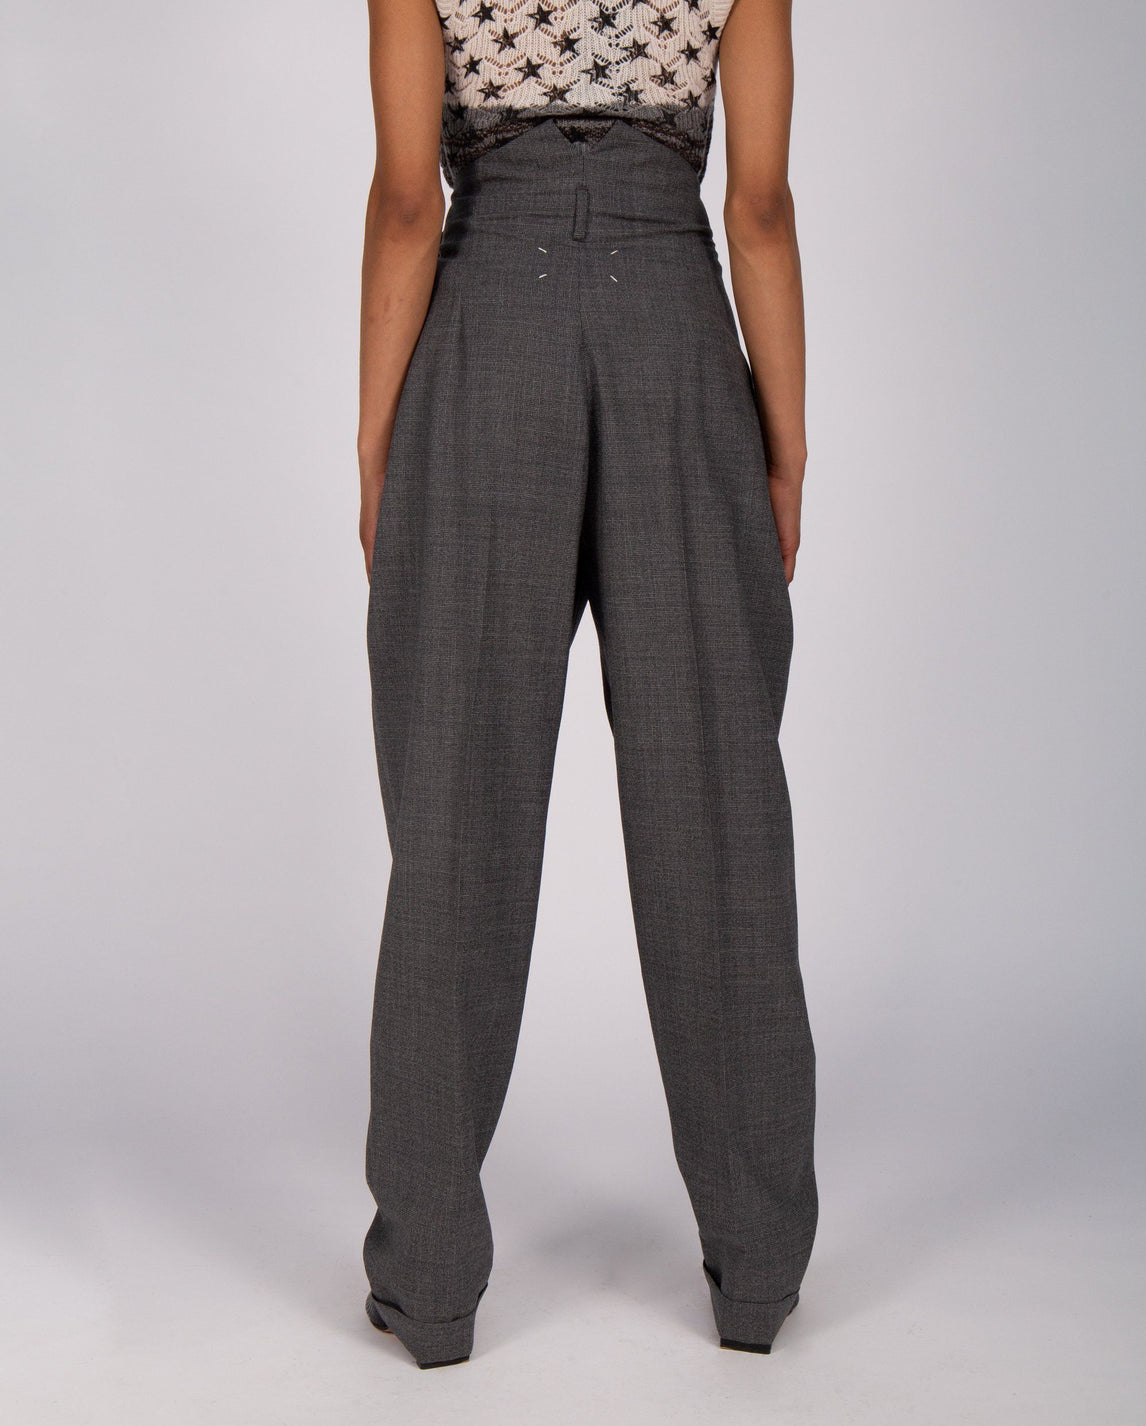 Pants - Grey WOMENS MAISON MARGIELA